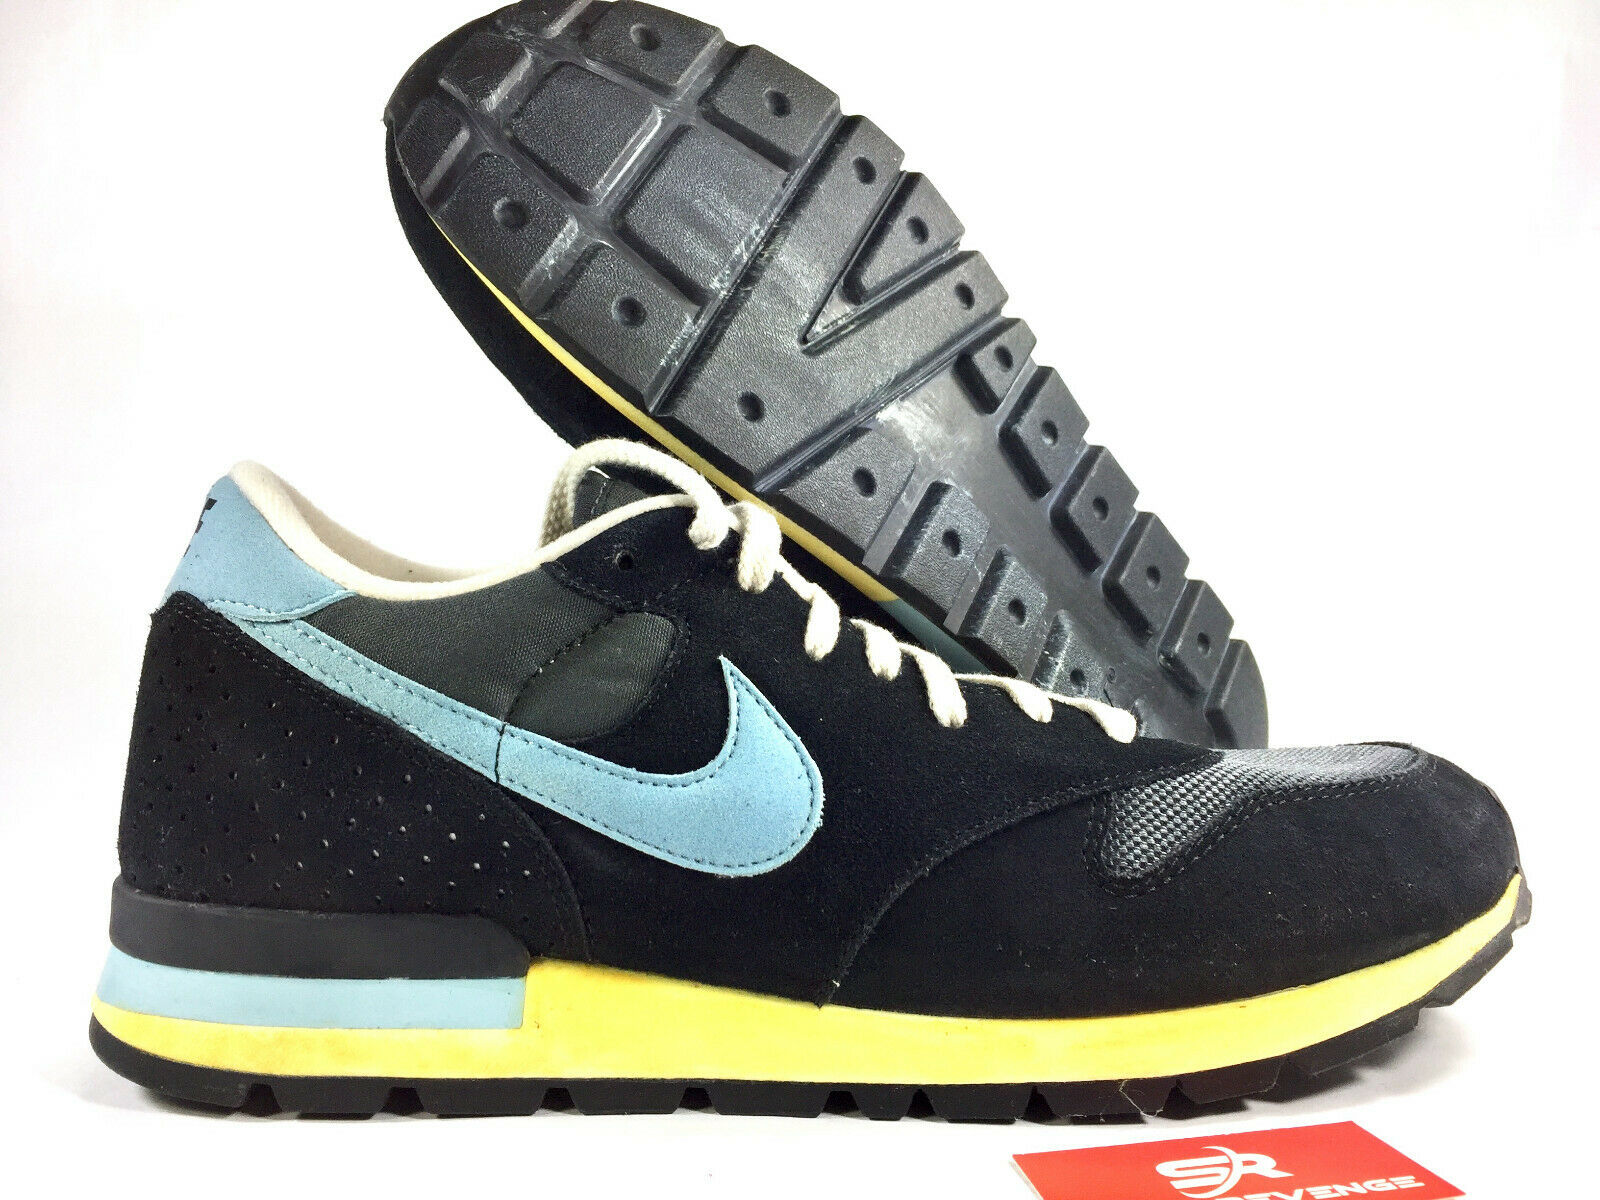 13 New NIKE AIR EPIC 525249-040 Retro shoes Anthracite   blueee-Black Yellow x1